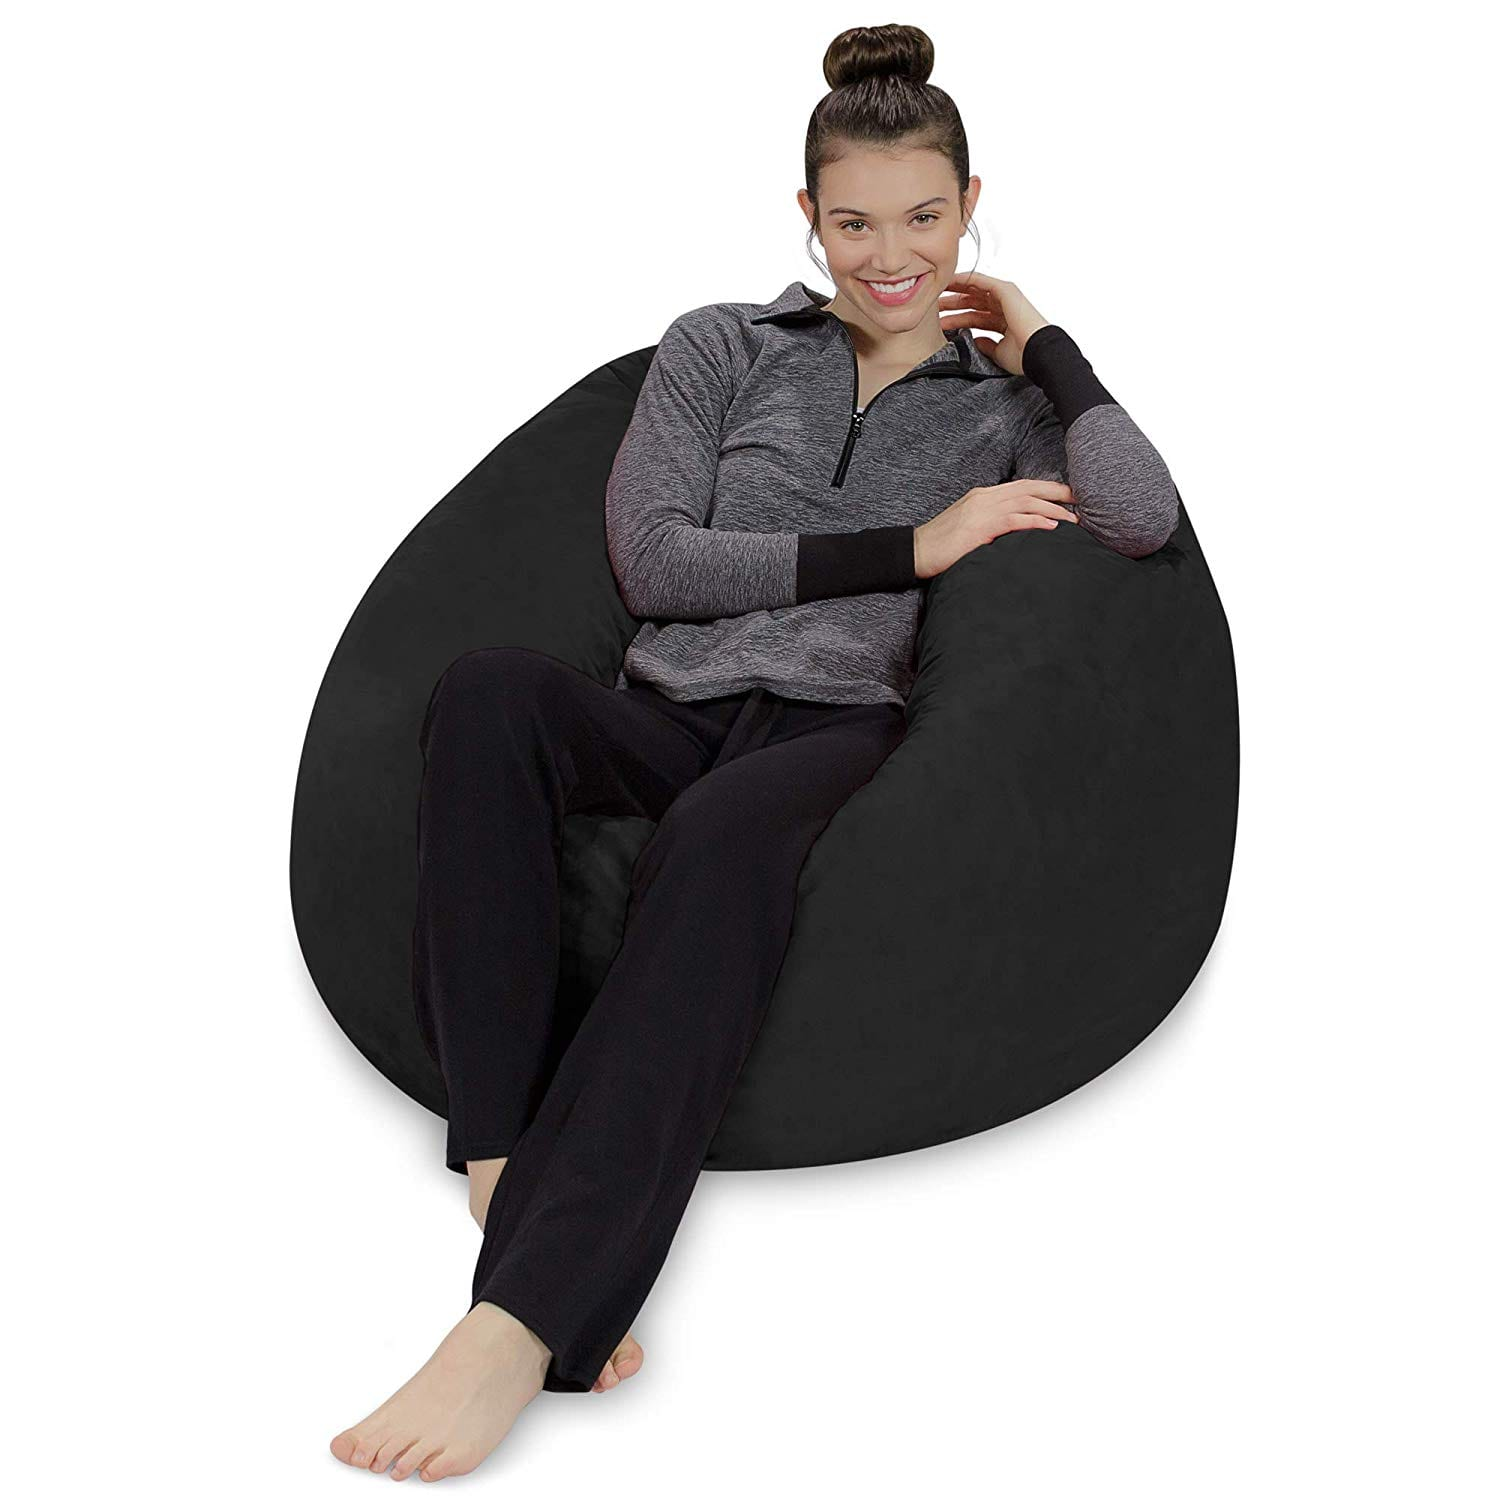 Sofa Sack-Bean Bags Bean Bag Chair